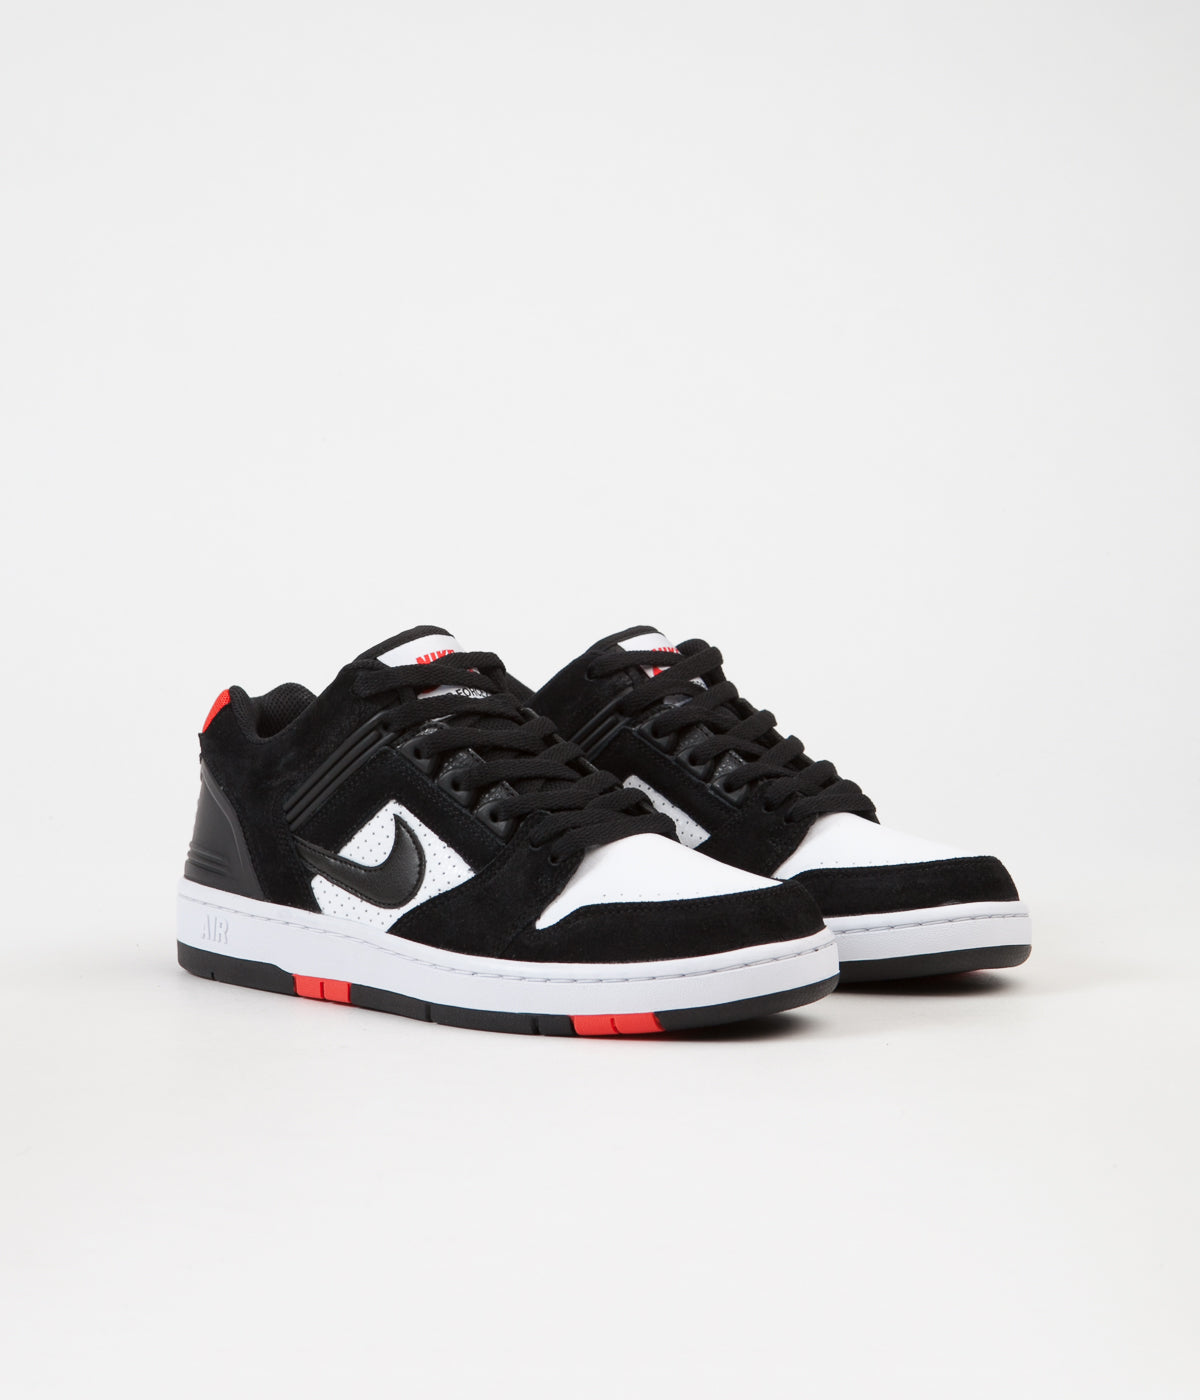 5b66a2493 ... Nike SB Air Force II Low Shoes - Black / Black - White - Habanero Red  ...